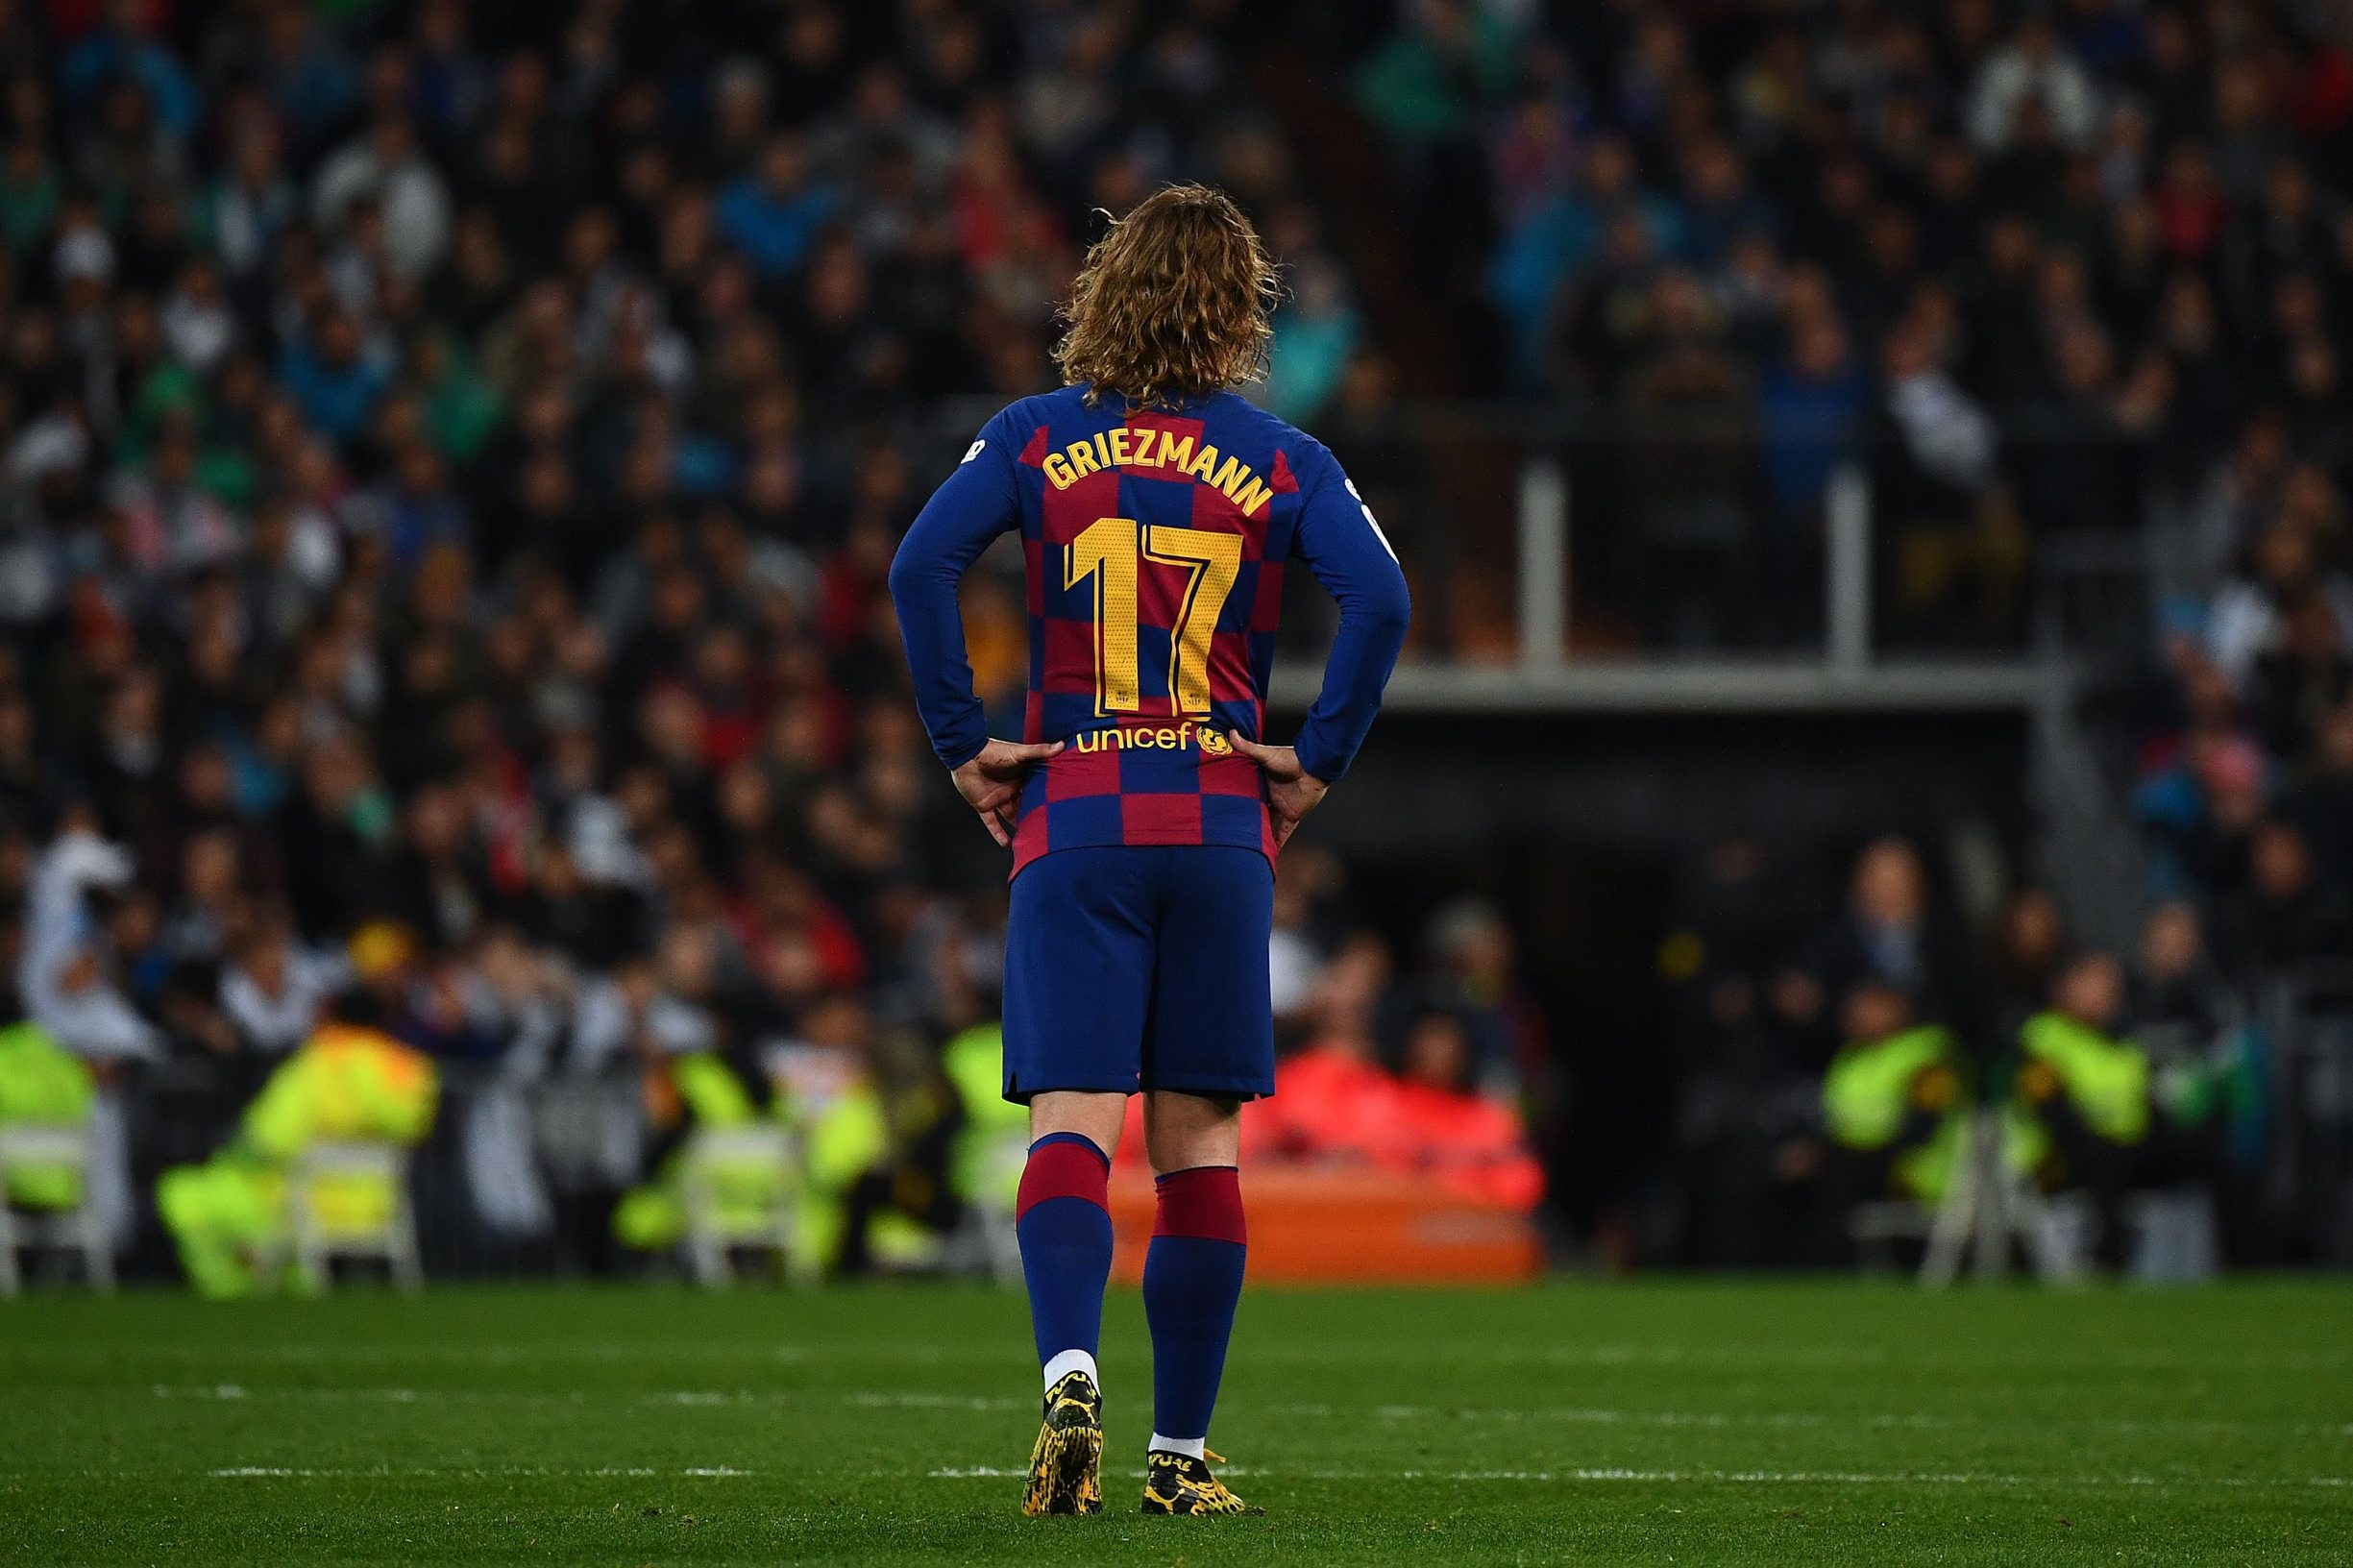 Barcelona's French forward Antoine Griezmann walks on the pitch during the Spanish League football match between Real Madrid and Barcelona at the Santiago Bernabeu stadium in Madrid on March 1, 2020. (Photo by GABRIEL BOUYS / AFP)